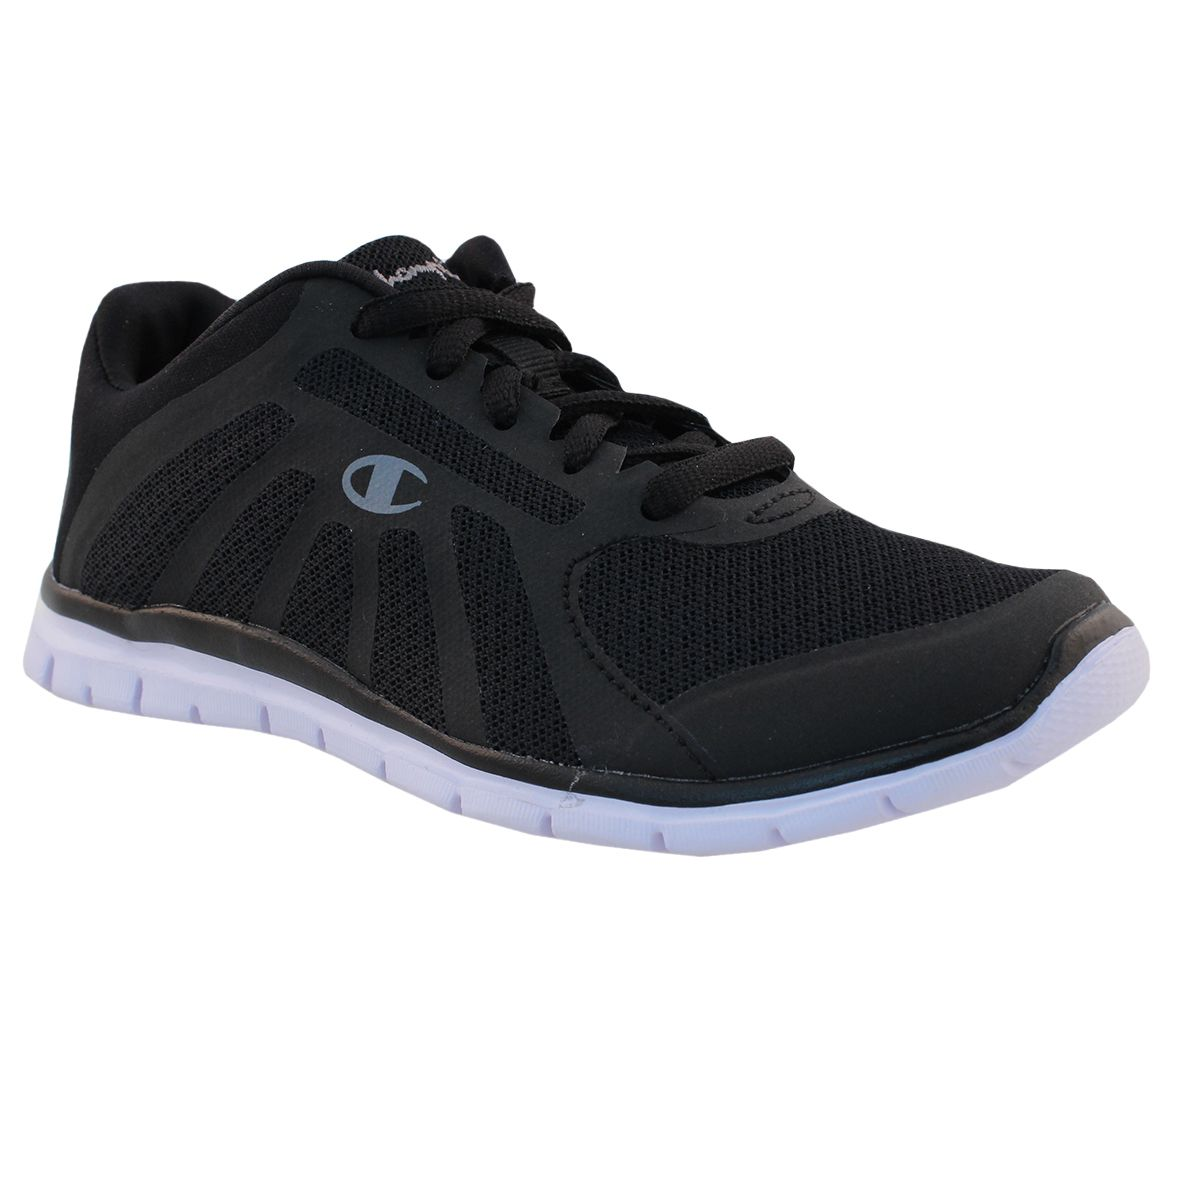 cd1c4a9fe ✤  stylefromachitownerseye ✤ Champions Shoe Payless Shoe Black ...